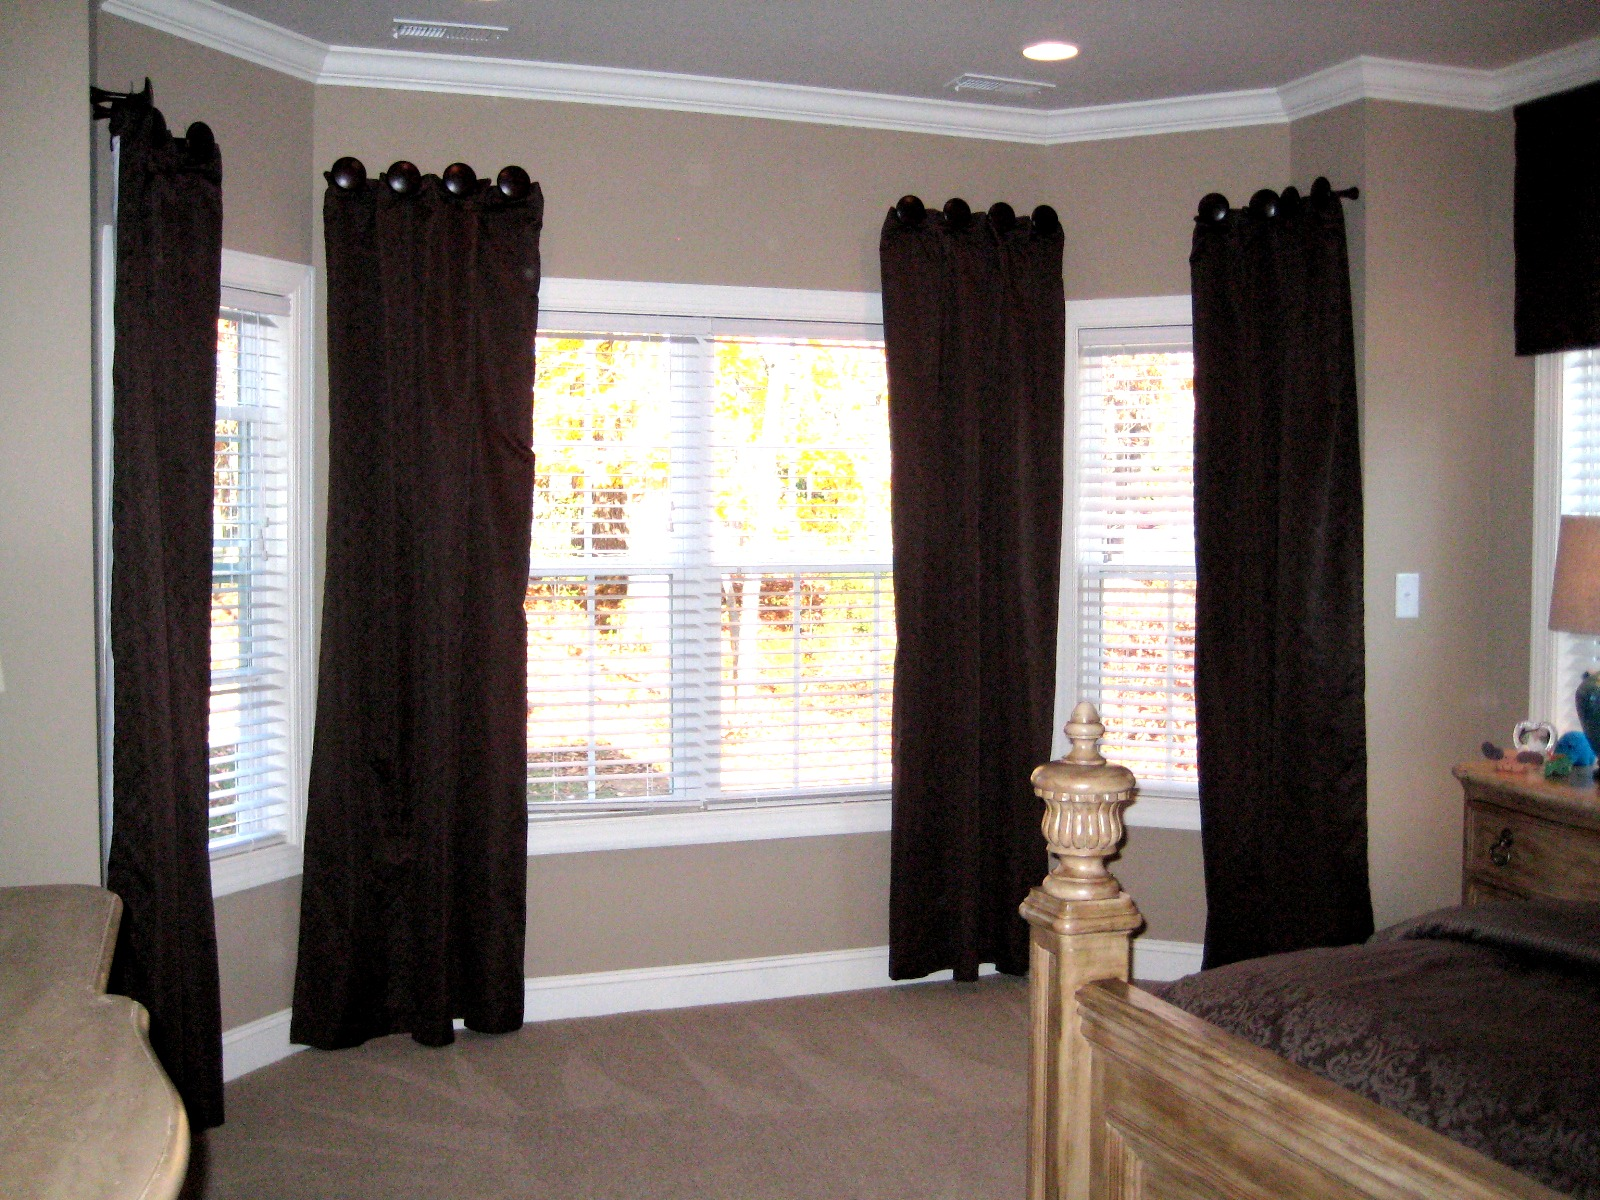 Bedroom bay window designs - Bay Window Bedroom Design Ideas Singapore